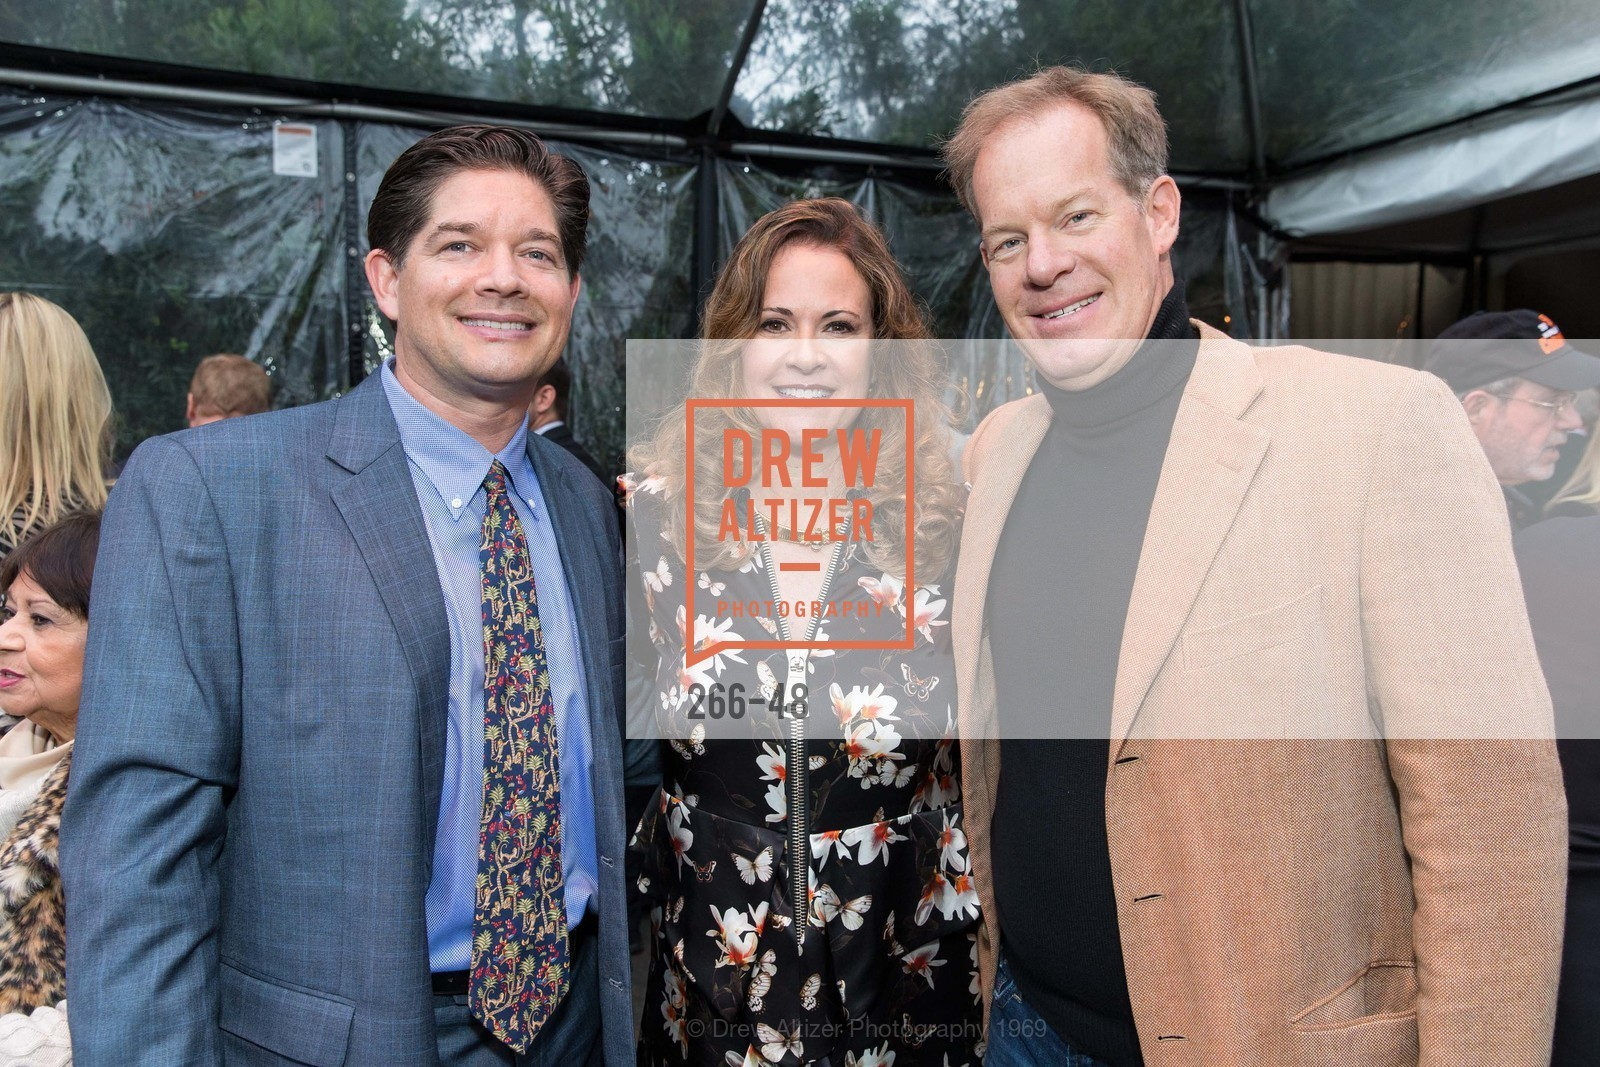 Extras, San Francisco Zoo Presents ZooFest 2015 Celebrating Champions, April 24th, 2015, Photo,Drew Altizer, Drew Altizer Photography, full-service event agency, private events, San Francisco photographer, photographer California